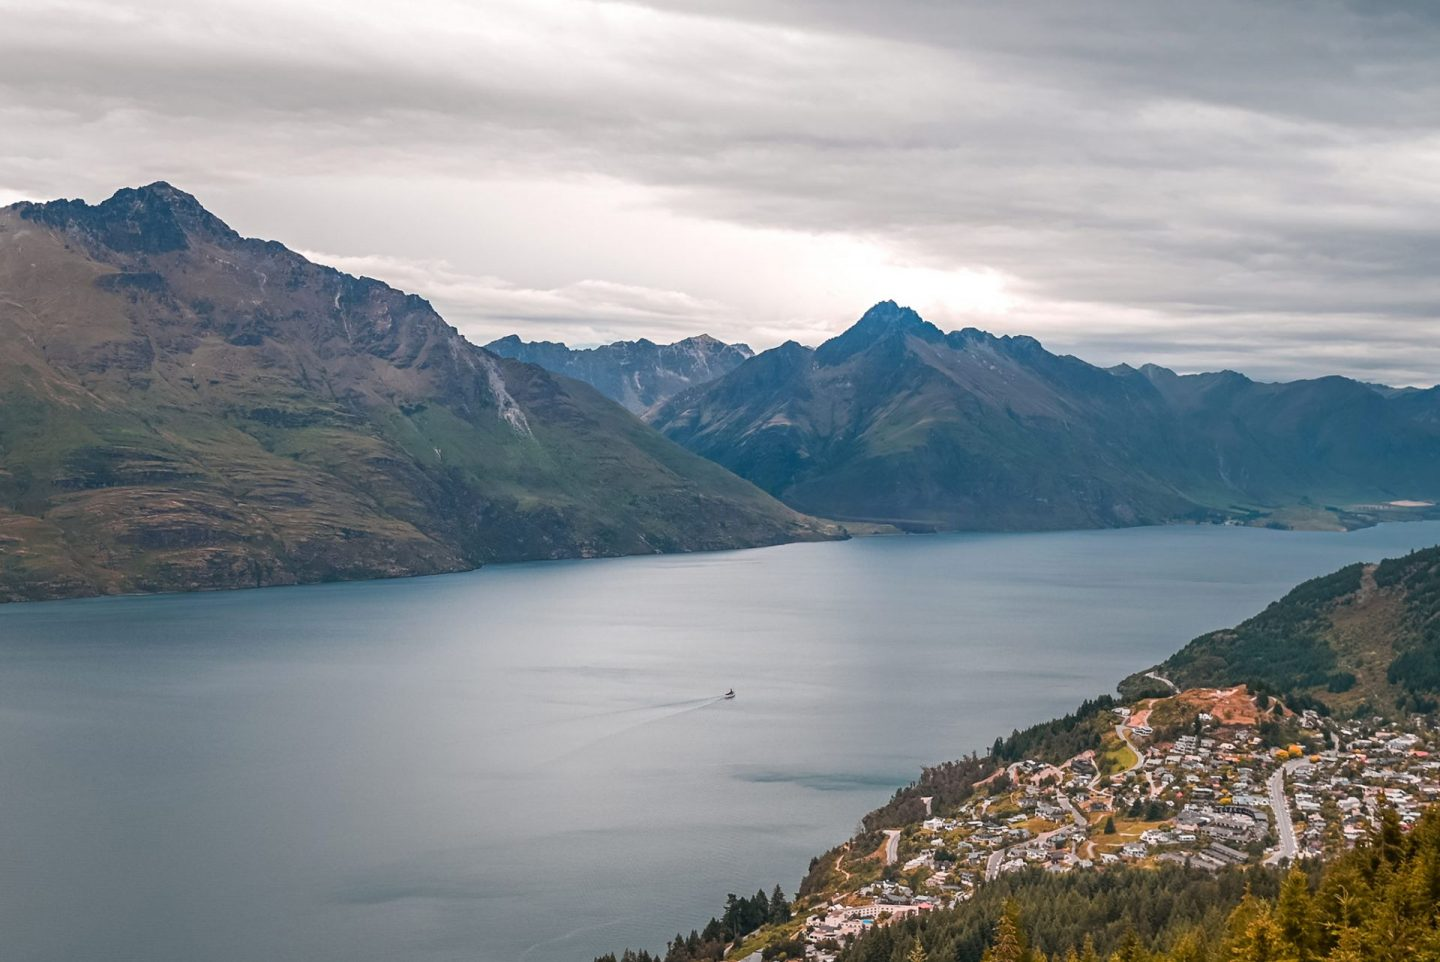 View of Lake Wakatipu from Bob's Peak